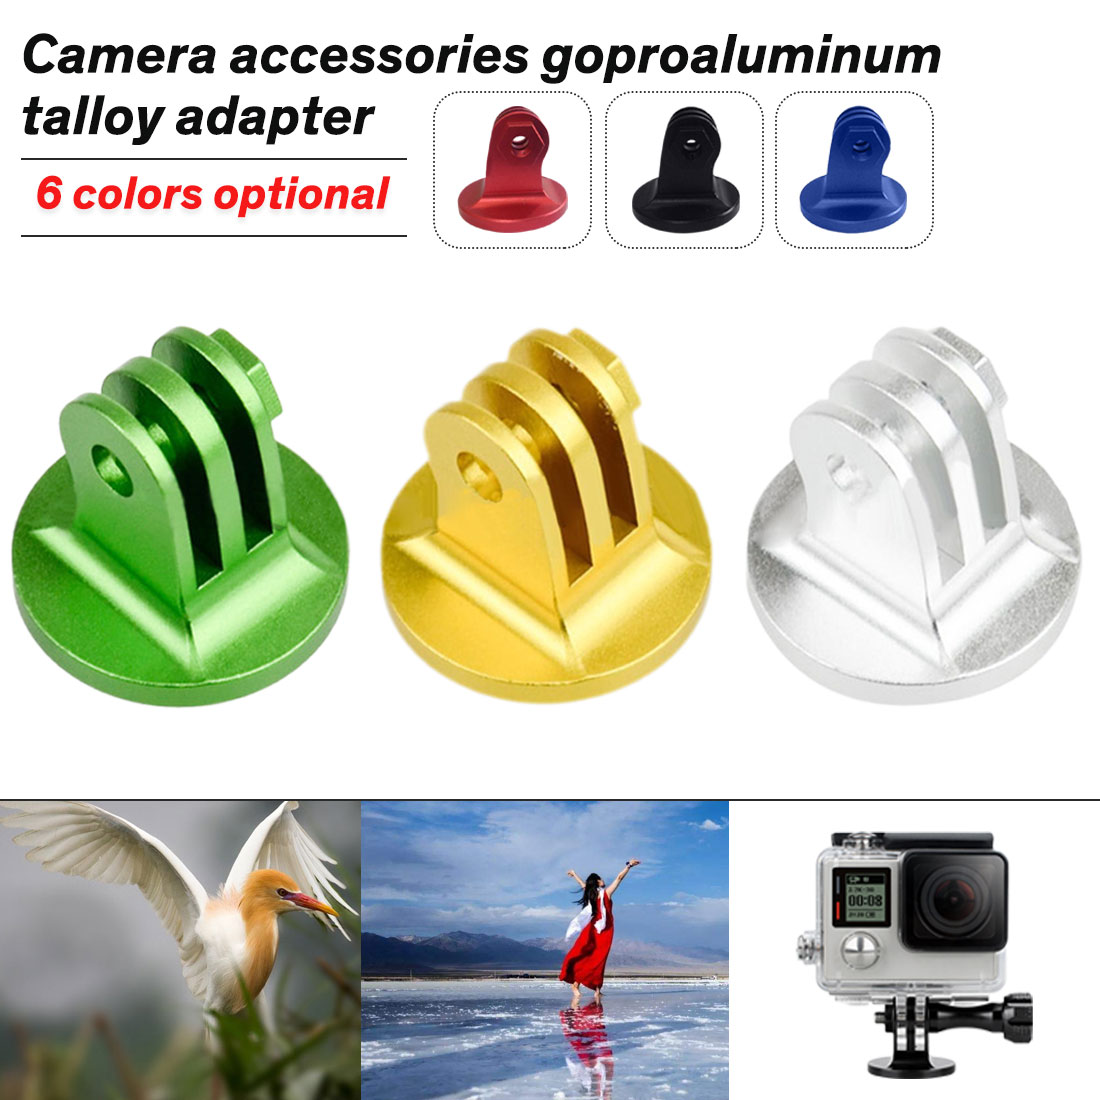 Accessories for Gopro Hero1 2 3 Mount CNC Aluminum Alloy Tripod Adapter for GoPro HERO 5 4 3+ 3 2 1 SJ4000 for Xiaomi Yi Camera